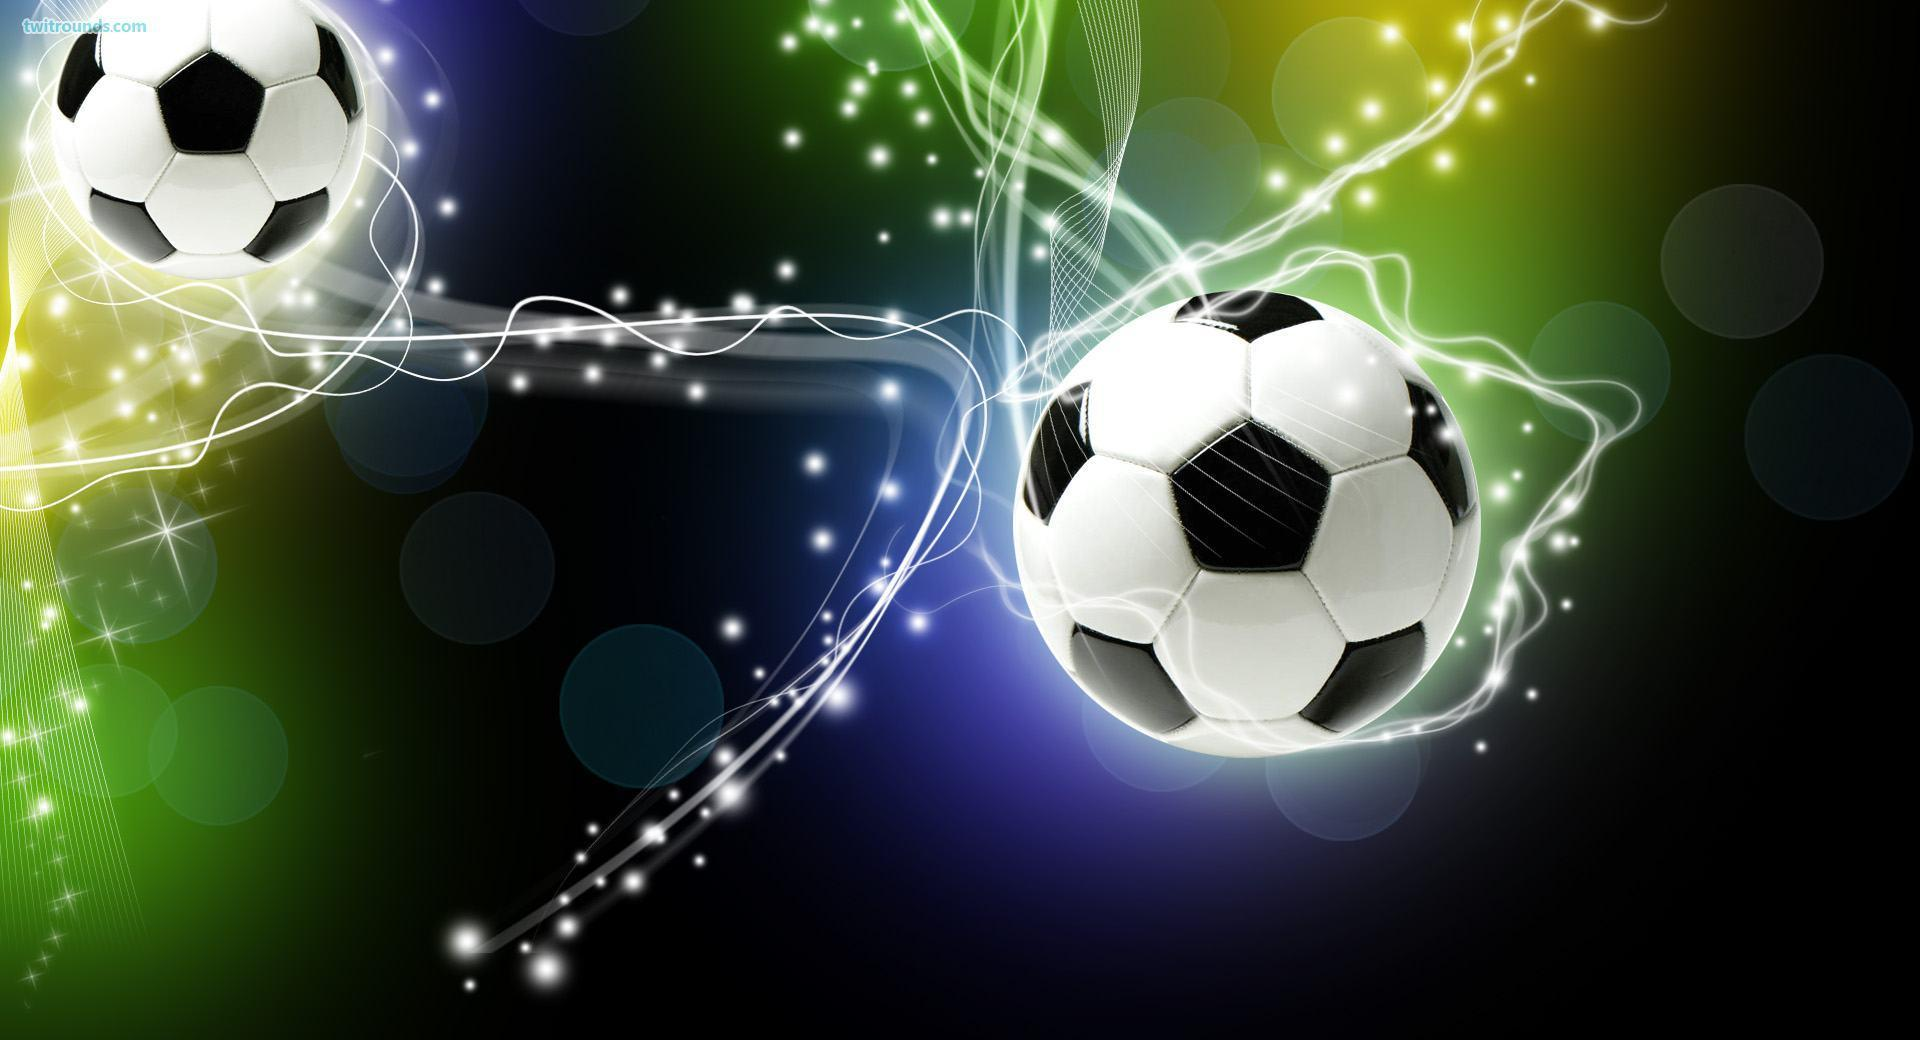 calcio hd wallpapers - photo #33